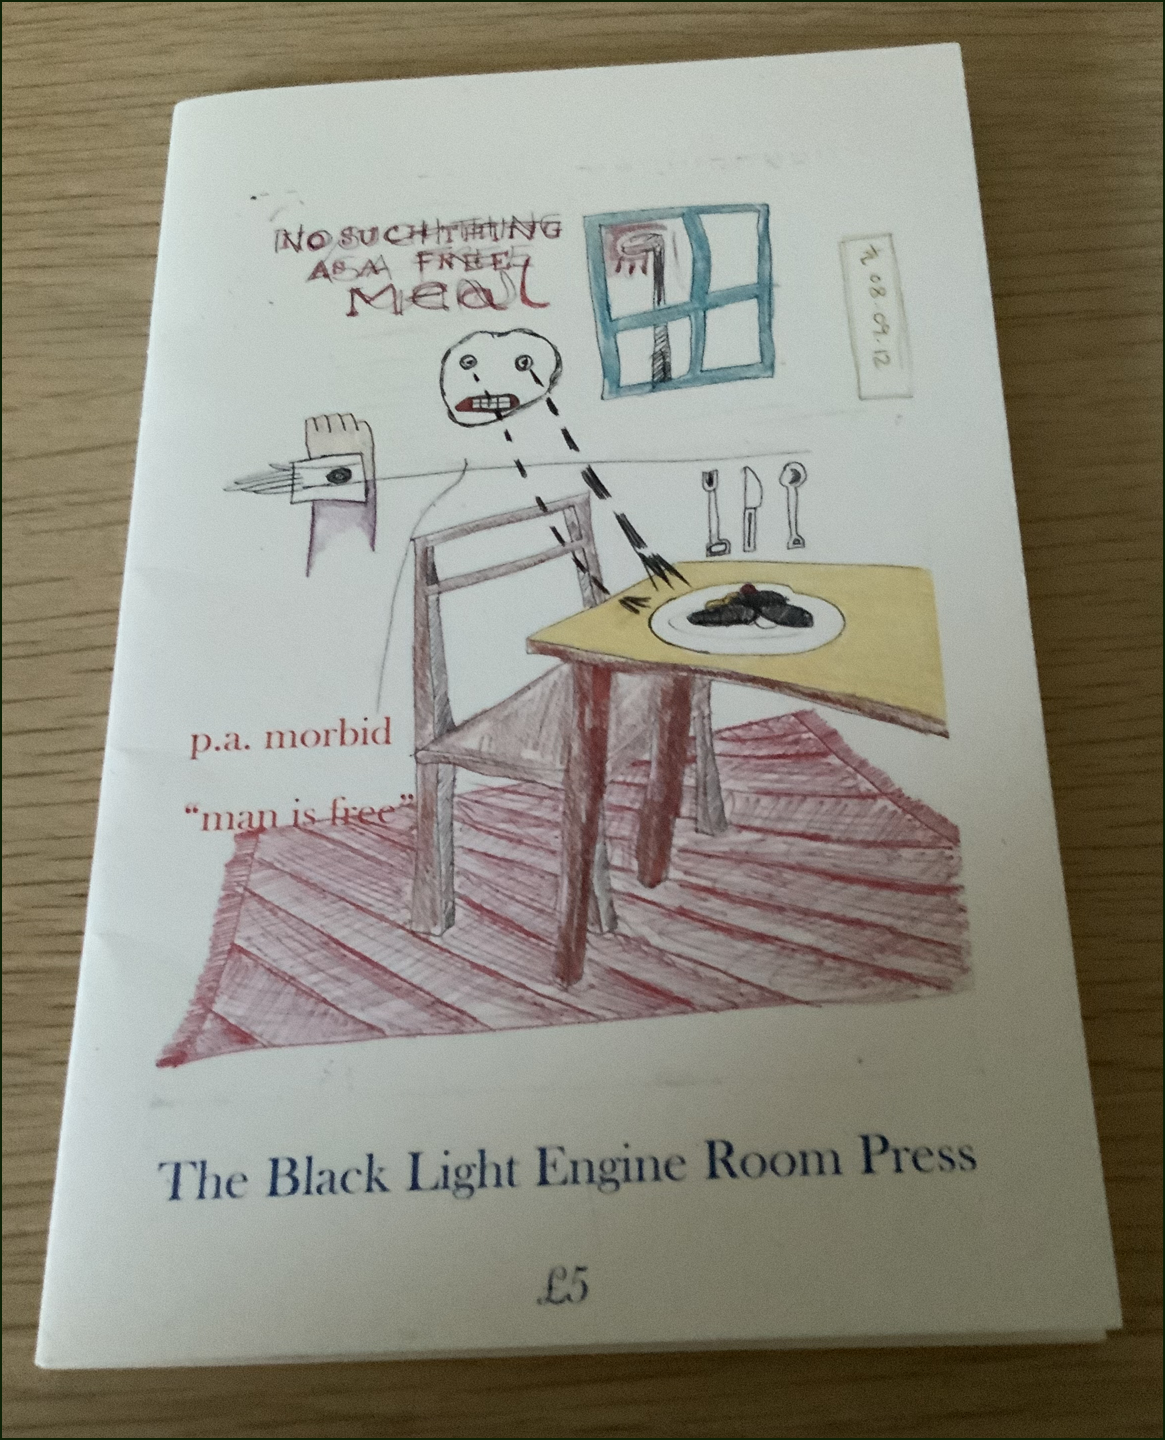 This is a photo of the pamphlet lying on a wooden surface. The jacket is white and most of it's taken up with a colour drawing done roughly, like a doodle really. It's a cartoon. It is a rough drawing of a room with table, chair and window. There's a meal on the table (maybe sausages on the plate), and the cutlery standing up vertically. There is a face with clenched teeth and tears dropping onto the table like two lines of black hyphens. Words above the head in scribbly unclear caps say: THERE'S NO SUCH THING AS A FREE MEAL. The author's name in pink lower case (same colour as the carpet) appears in the middle of the jacket left-justified, with the pamphlet title just below. An inch from the bottom on bold lower case is the title of the press: The Black Light Engine Room Press.